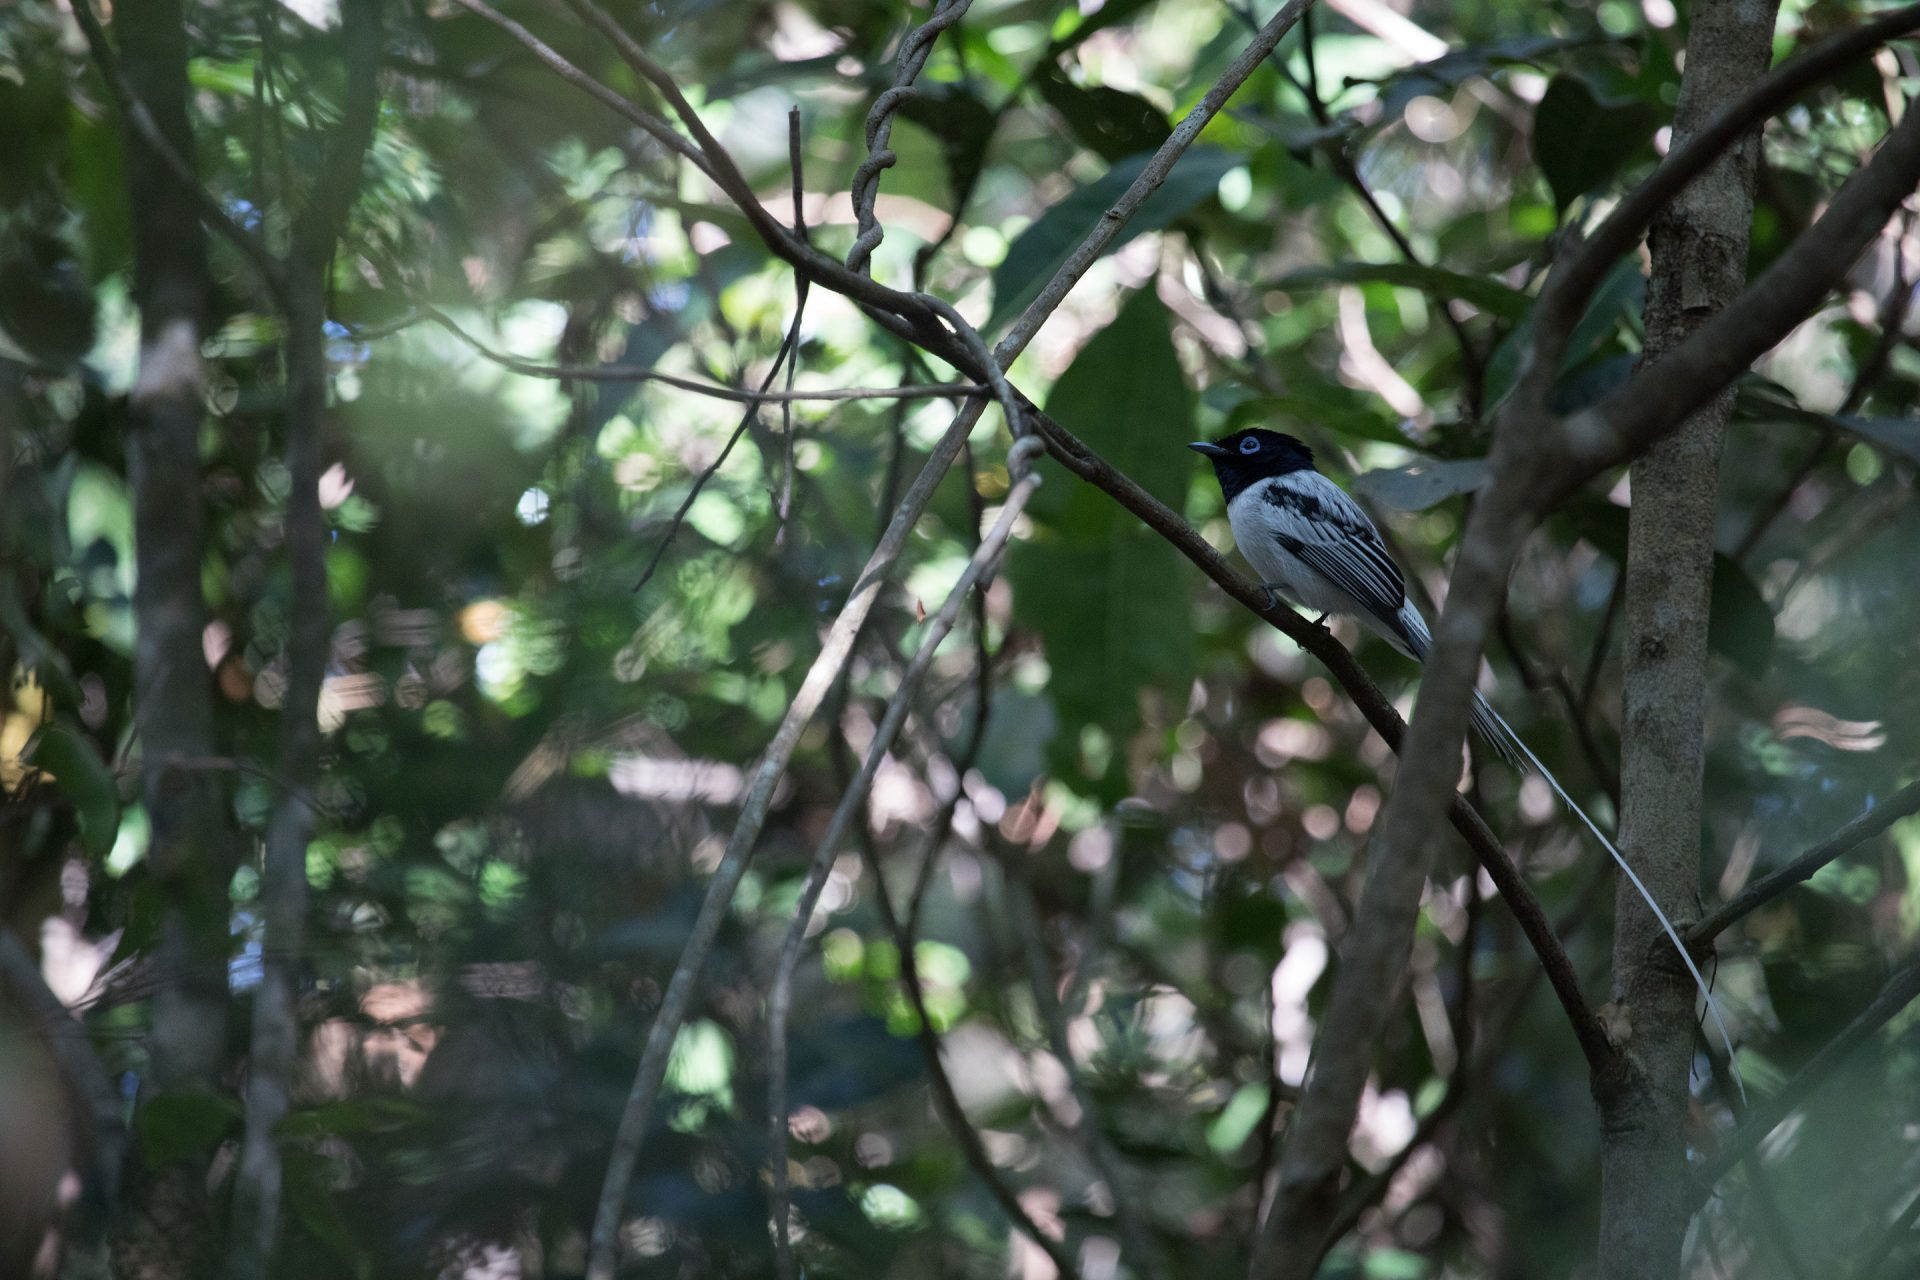 Male (white-morph) Madagascar Paradise Flycatcher